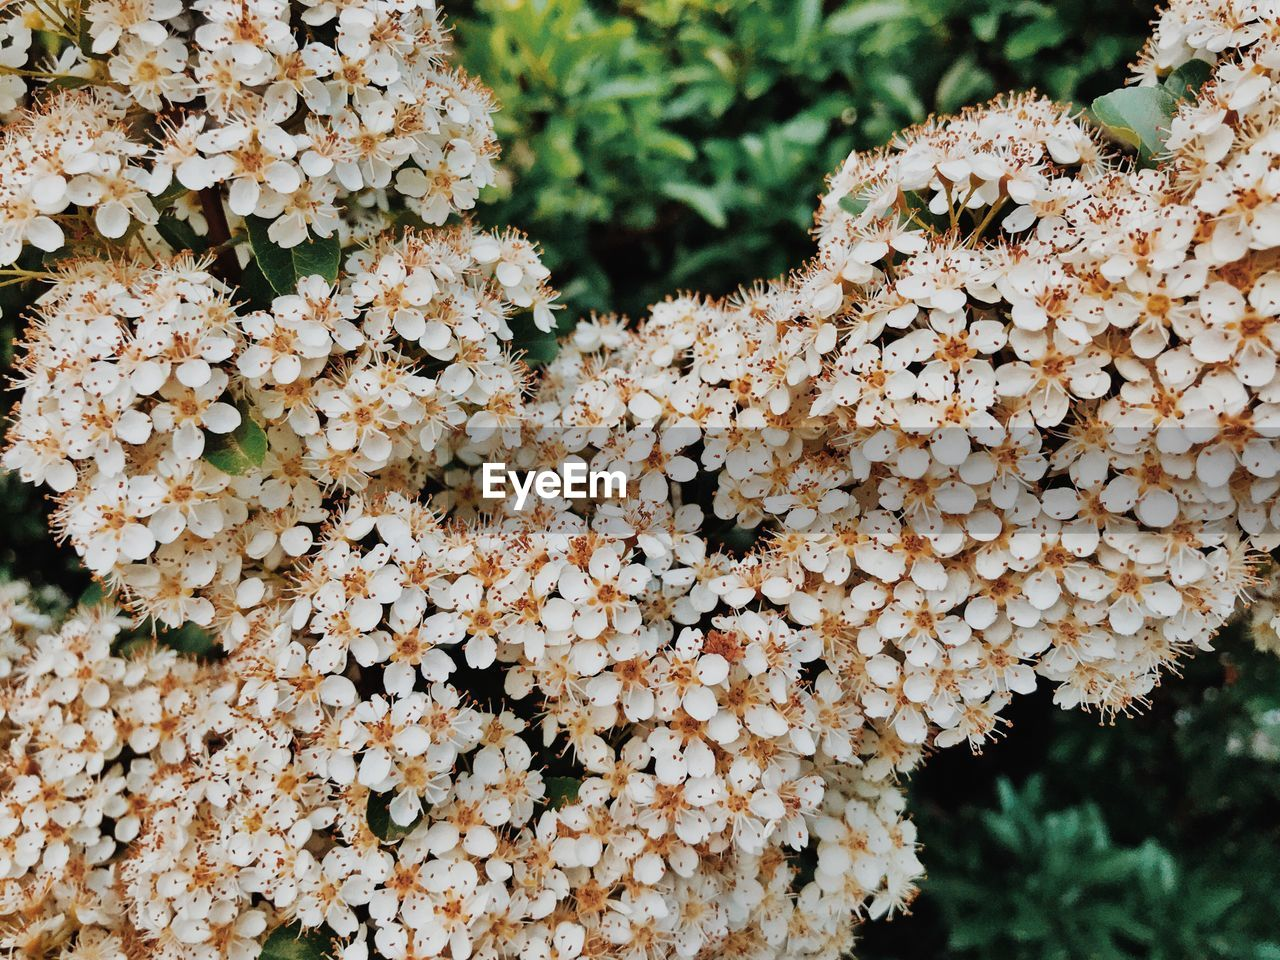 Close-Up Of Hydrangea Flowers Growing On Land